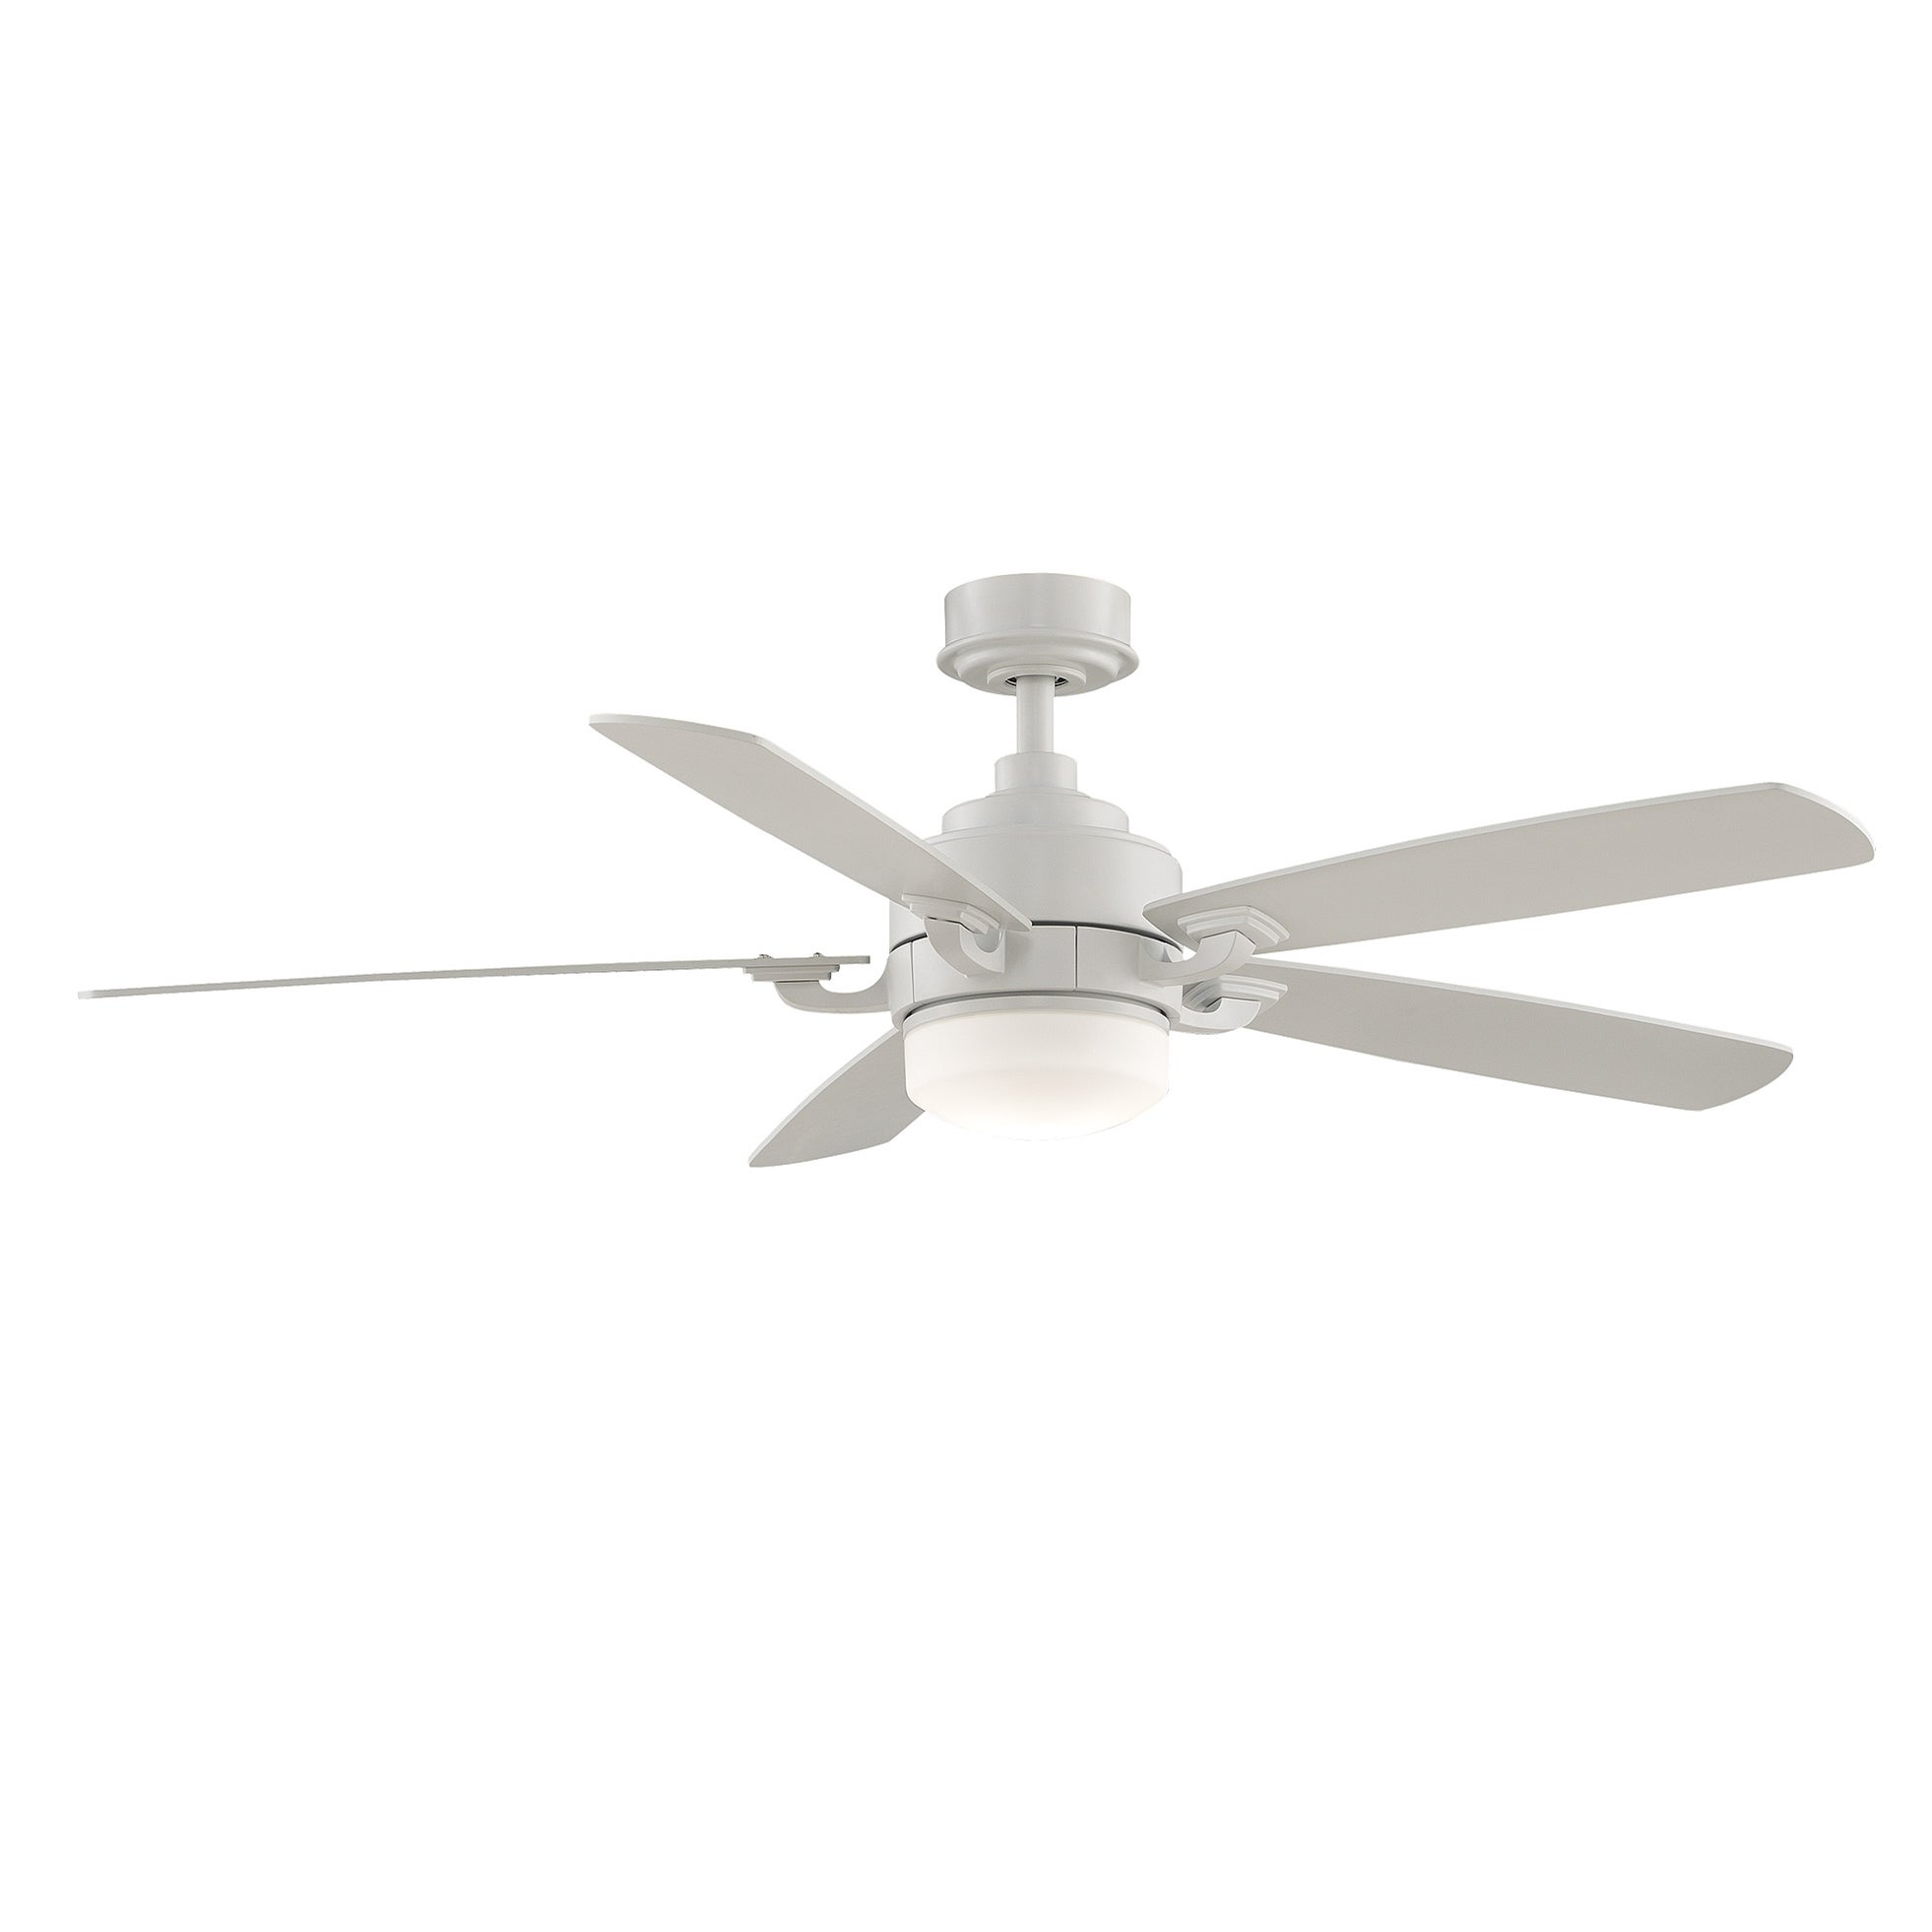 Celano v2 Ceiling Fan Free Shipping Today Overstock